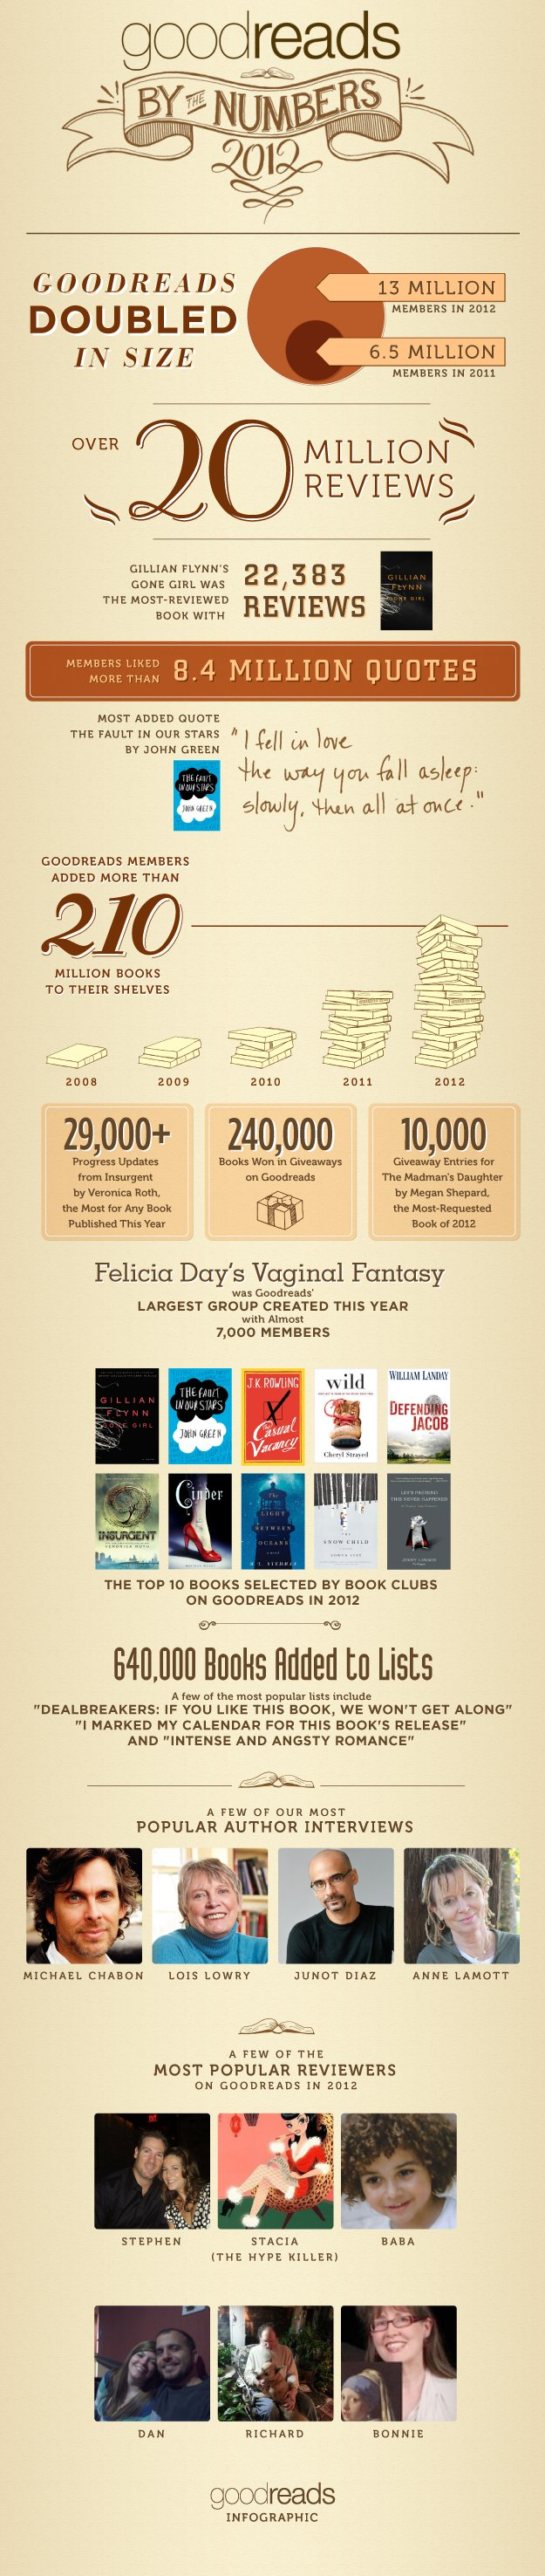 Goodreads Infographic: What Was The Most Reviewed Book Of 2012?